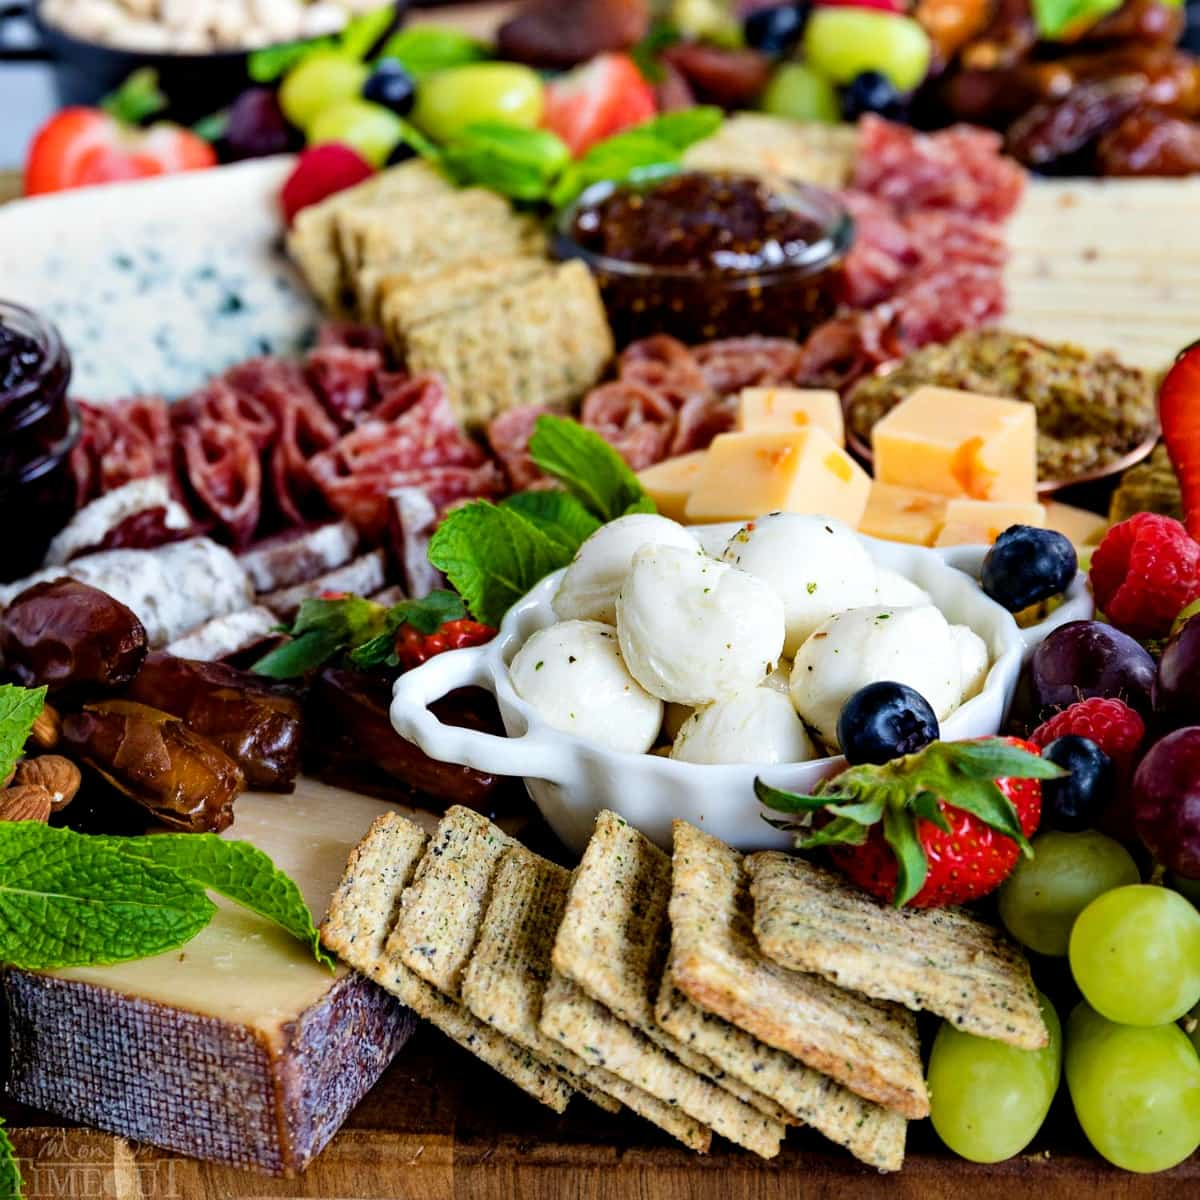 charcuterie-board-with-triscuit-crackers-mozzarella-balls-dates-grapes